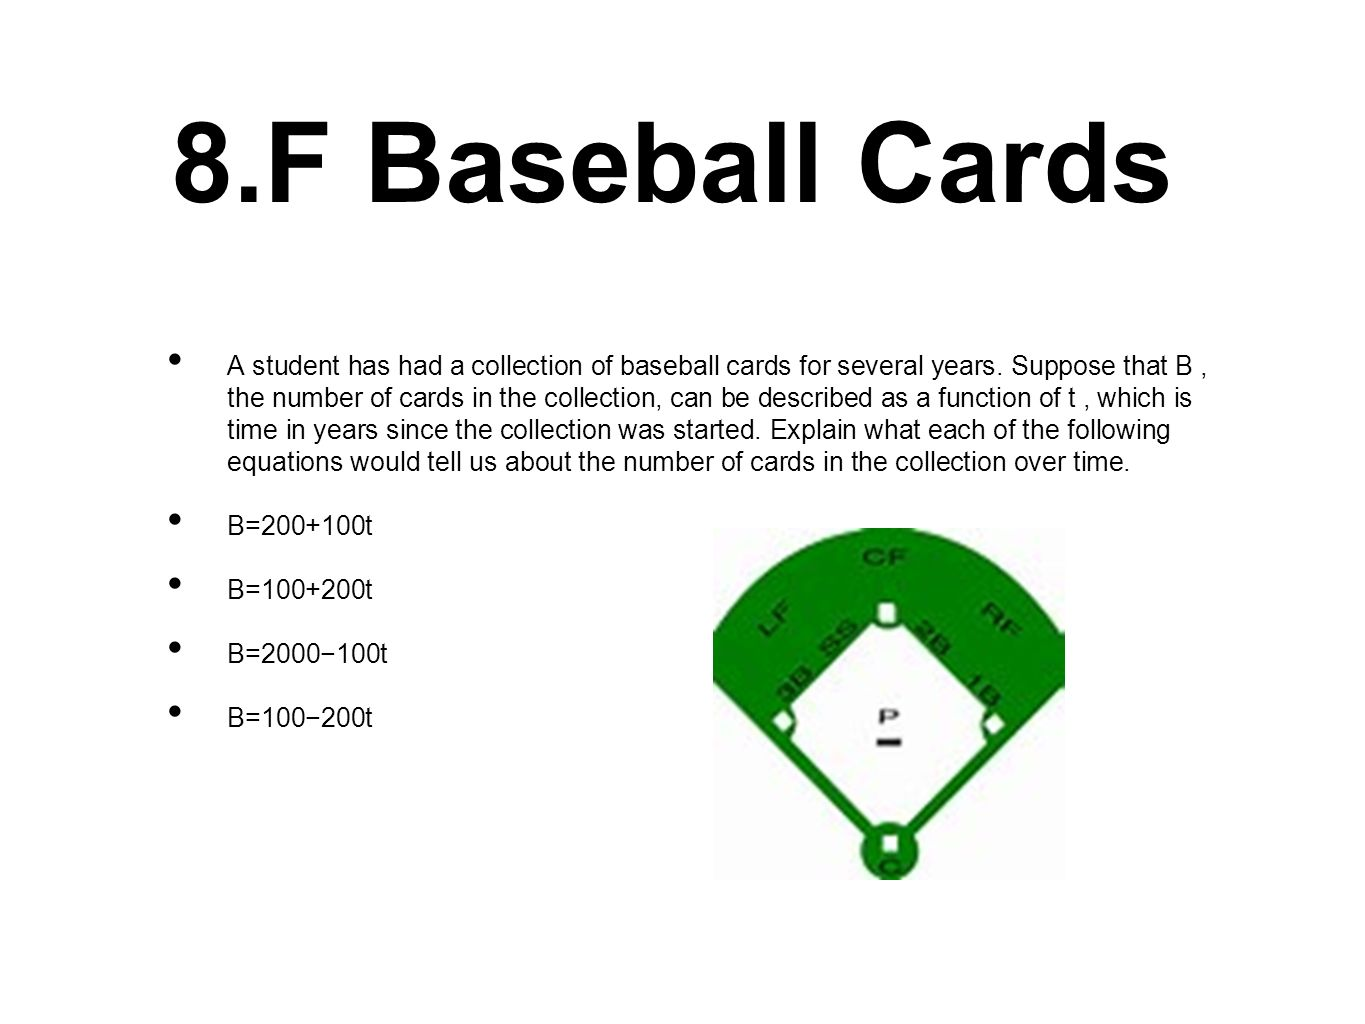 8.F Baseball Cards A student has had a collection of baseball cards for several years. Suppose that B, the number of cards in the collection, can be d